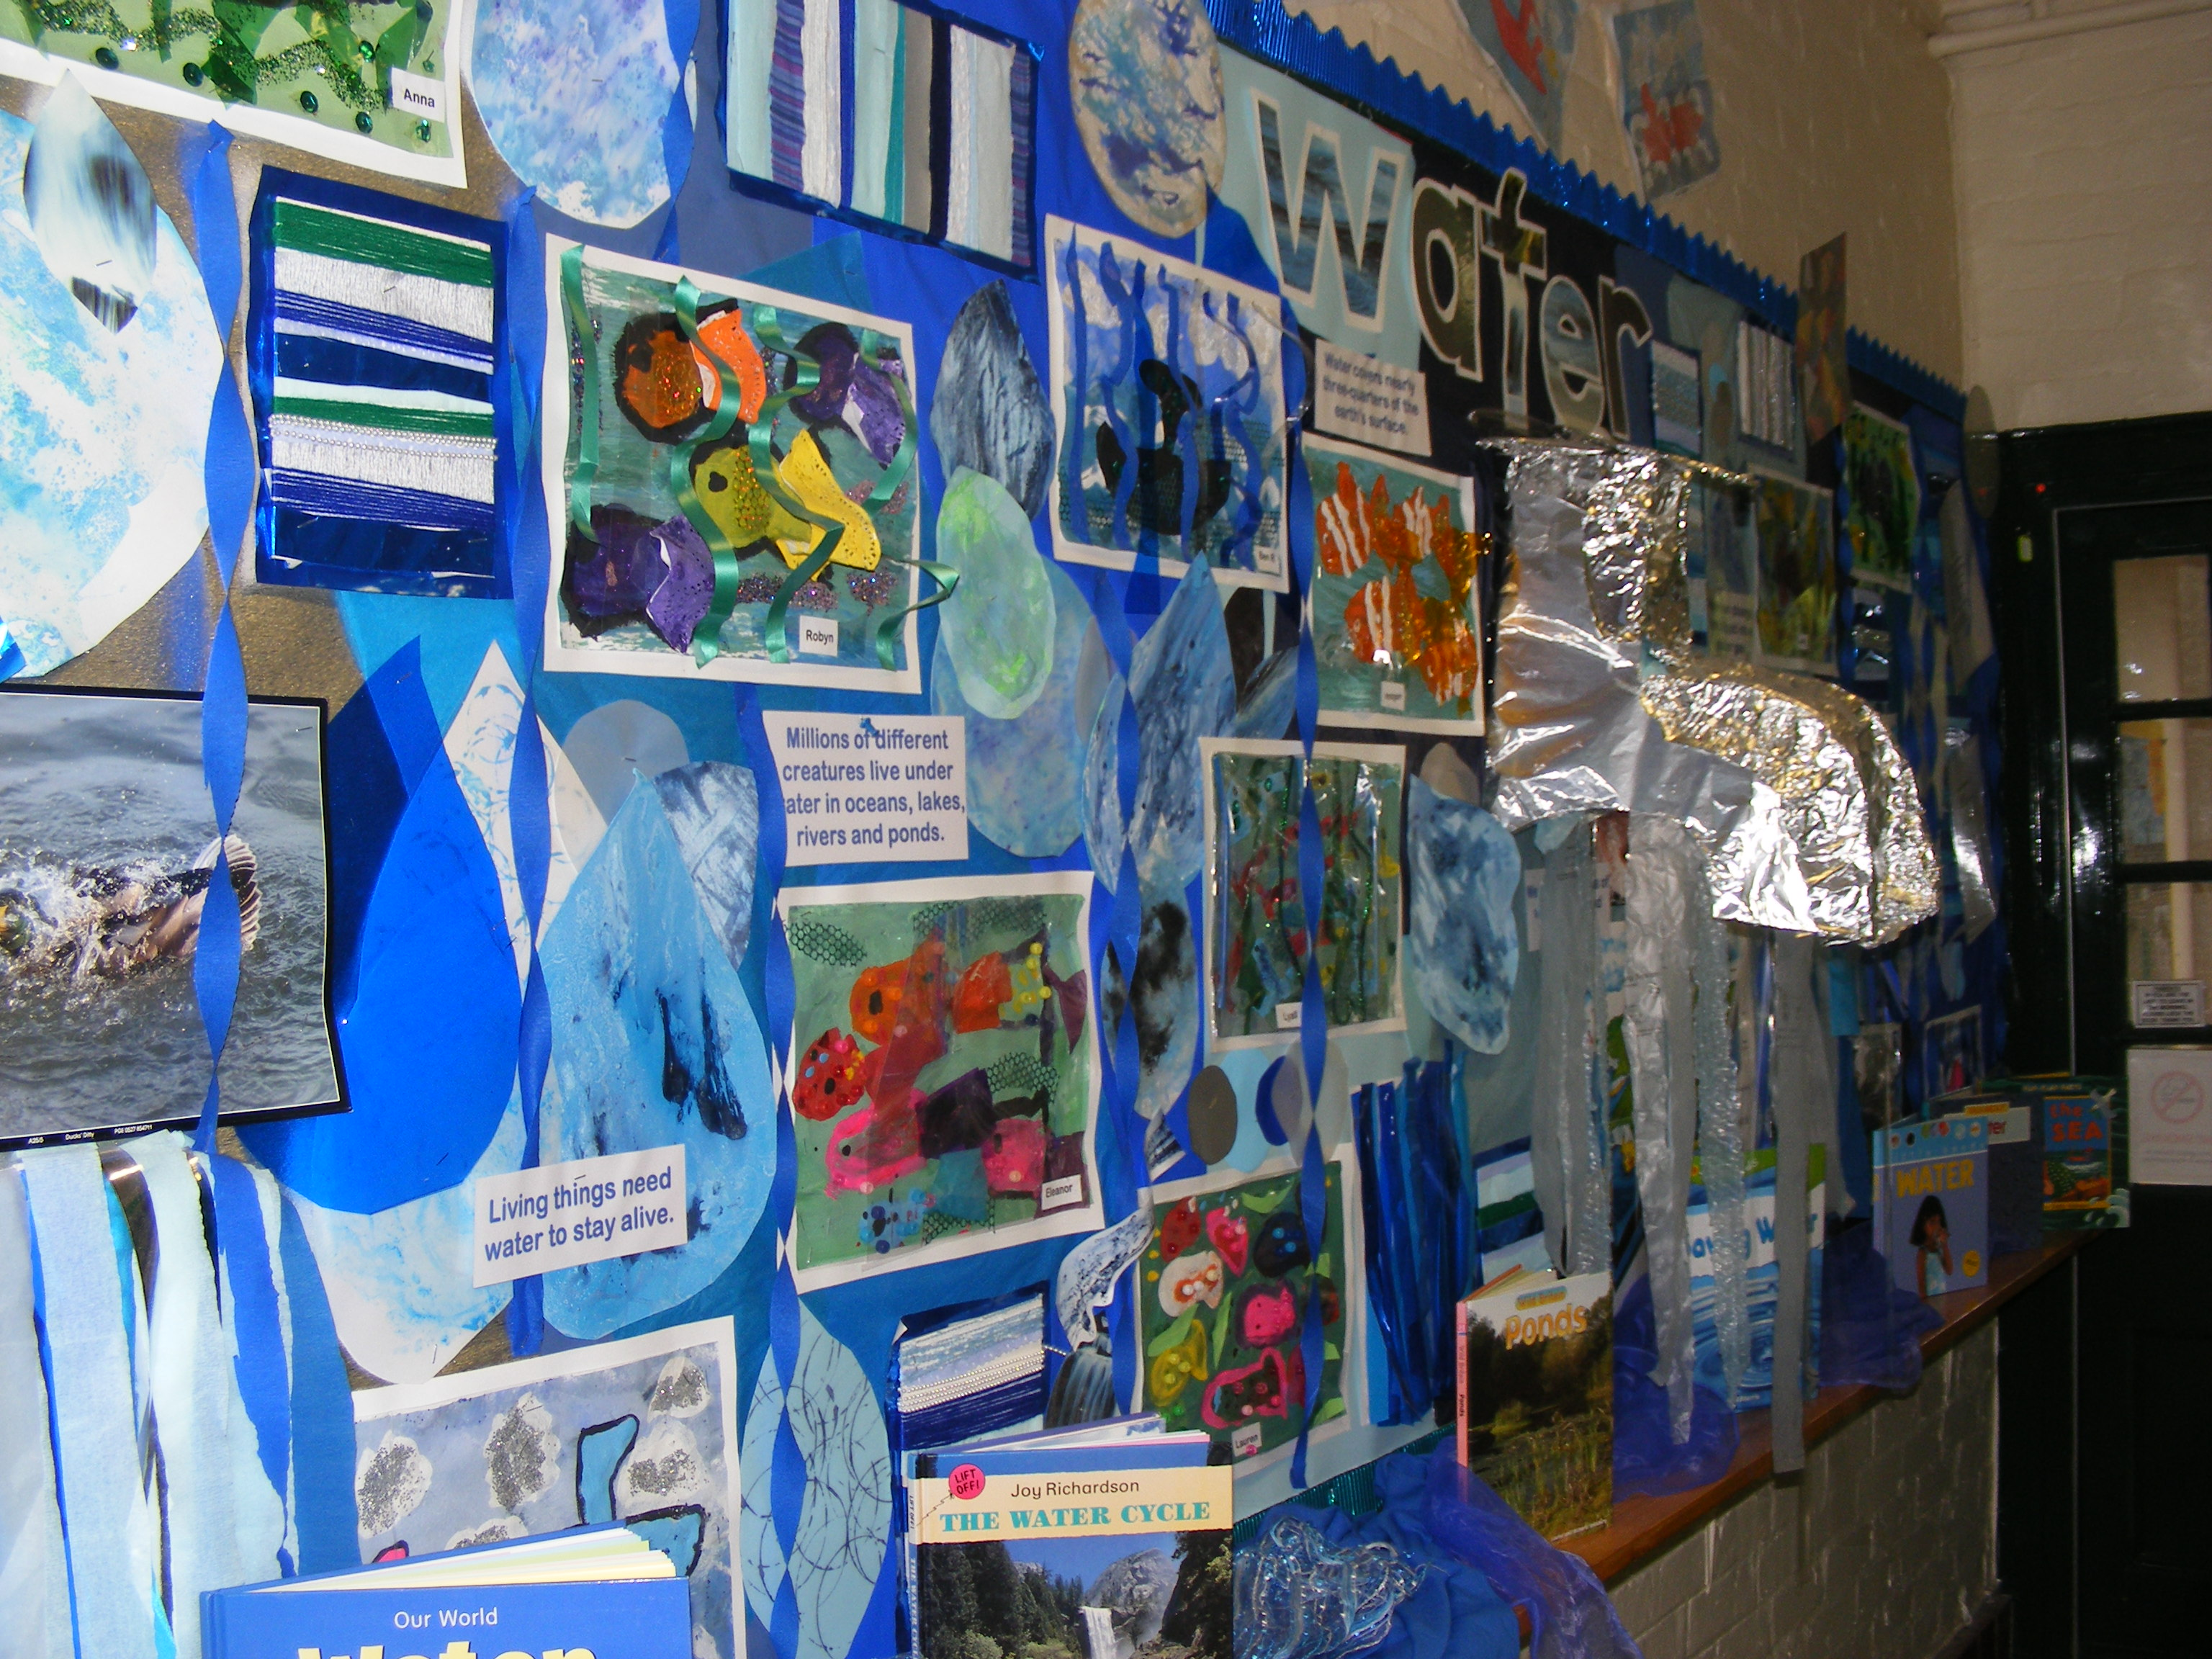 Coleshill Infants' School Saves Water Mission Update! : News from ...